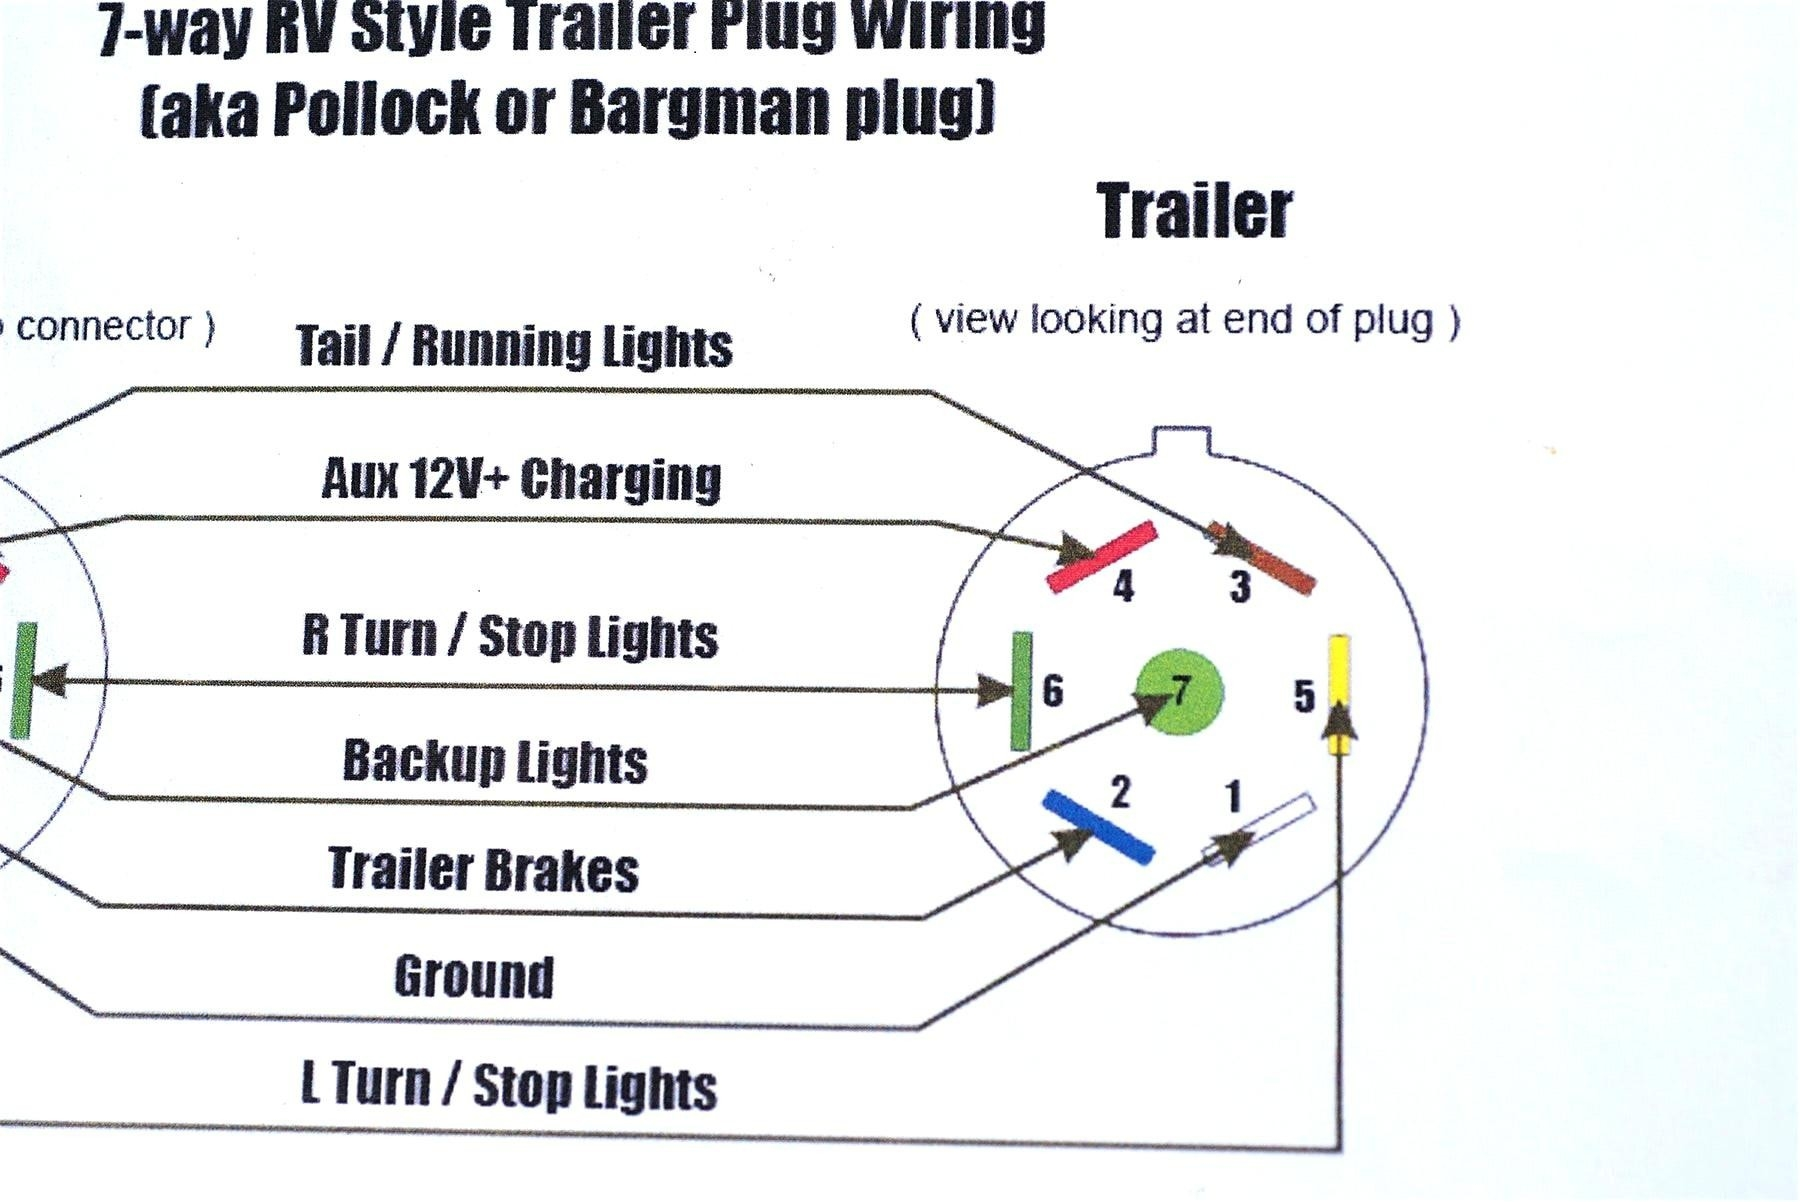 trailer wiring schematic 7 way Collection-7 way plug wiring diagram electrical drawing wiring diagram u2022 rh circuitdiagramlabs today Pollak 7 Pin Wiring Diagram 7 Wire Connector Wiring Diagram 4-g